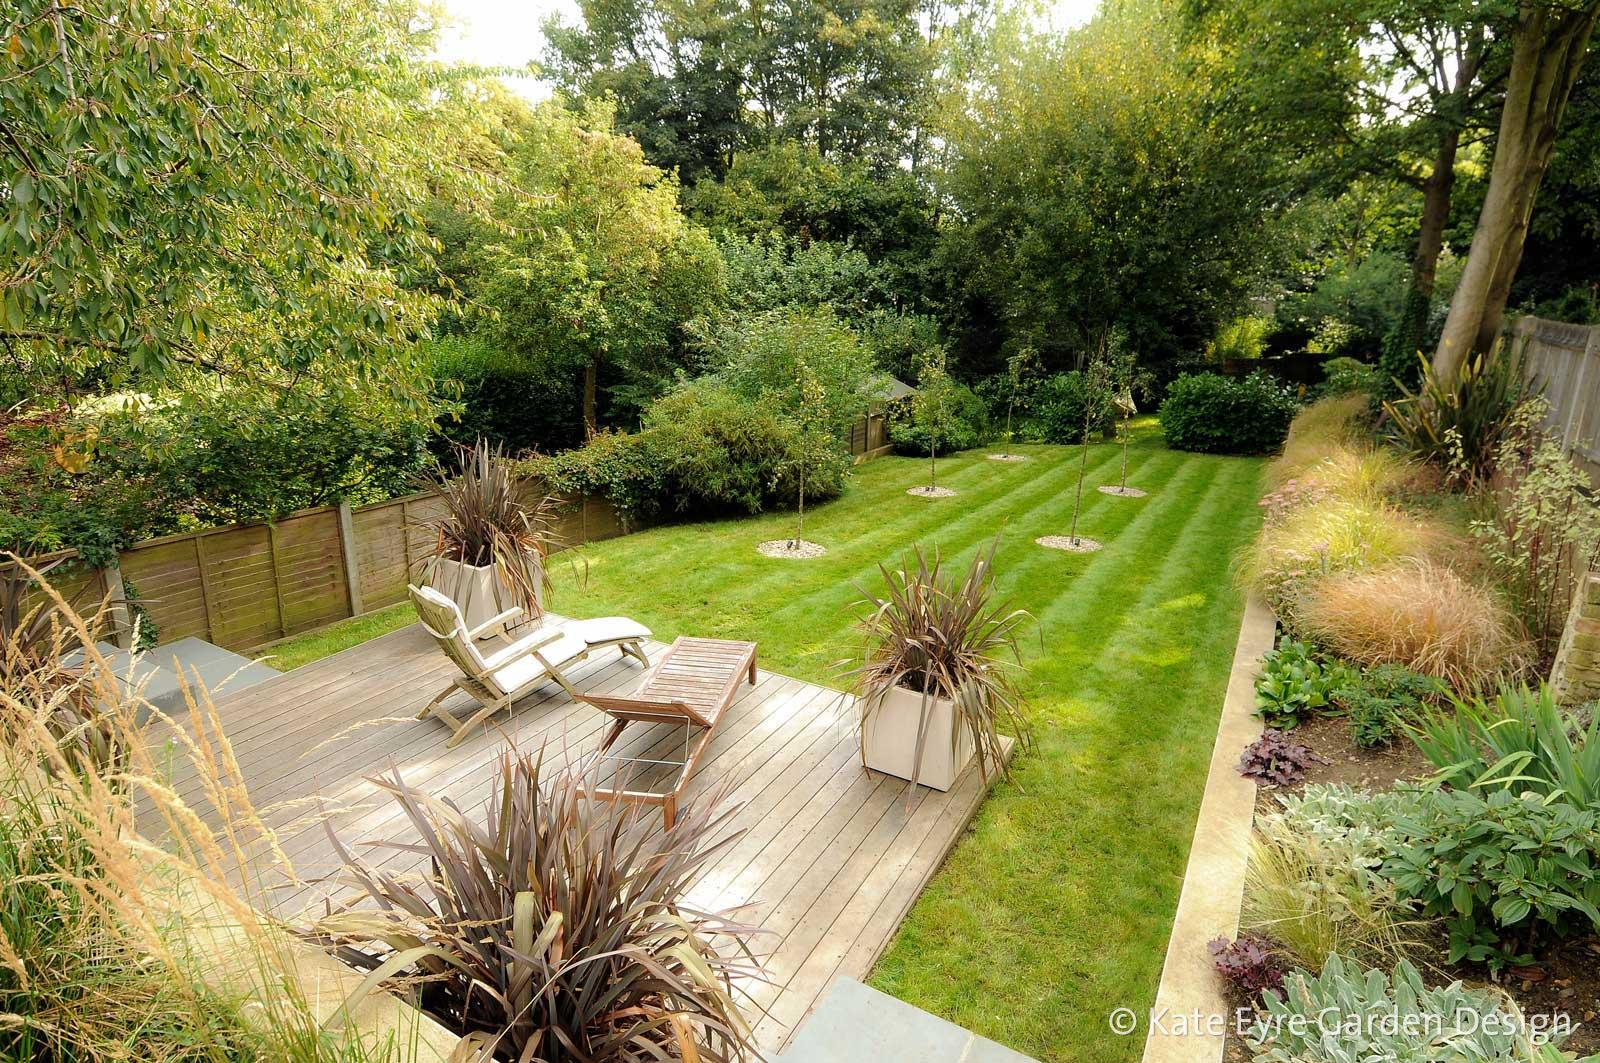 Garden design in crystal palace south east london for Design of the garden